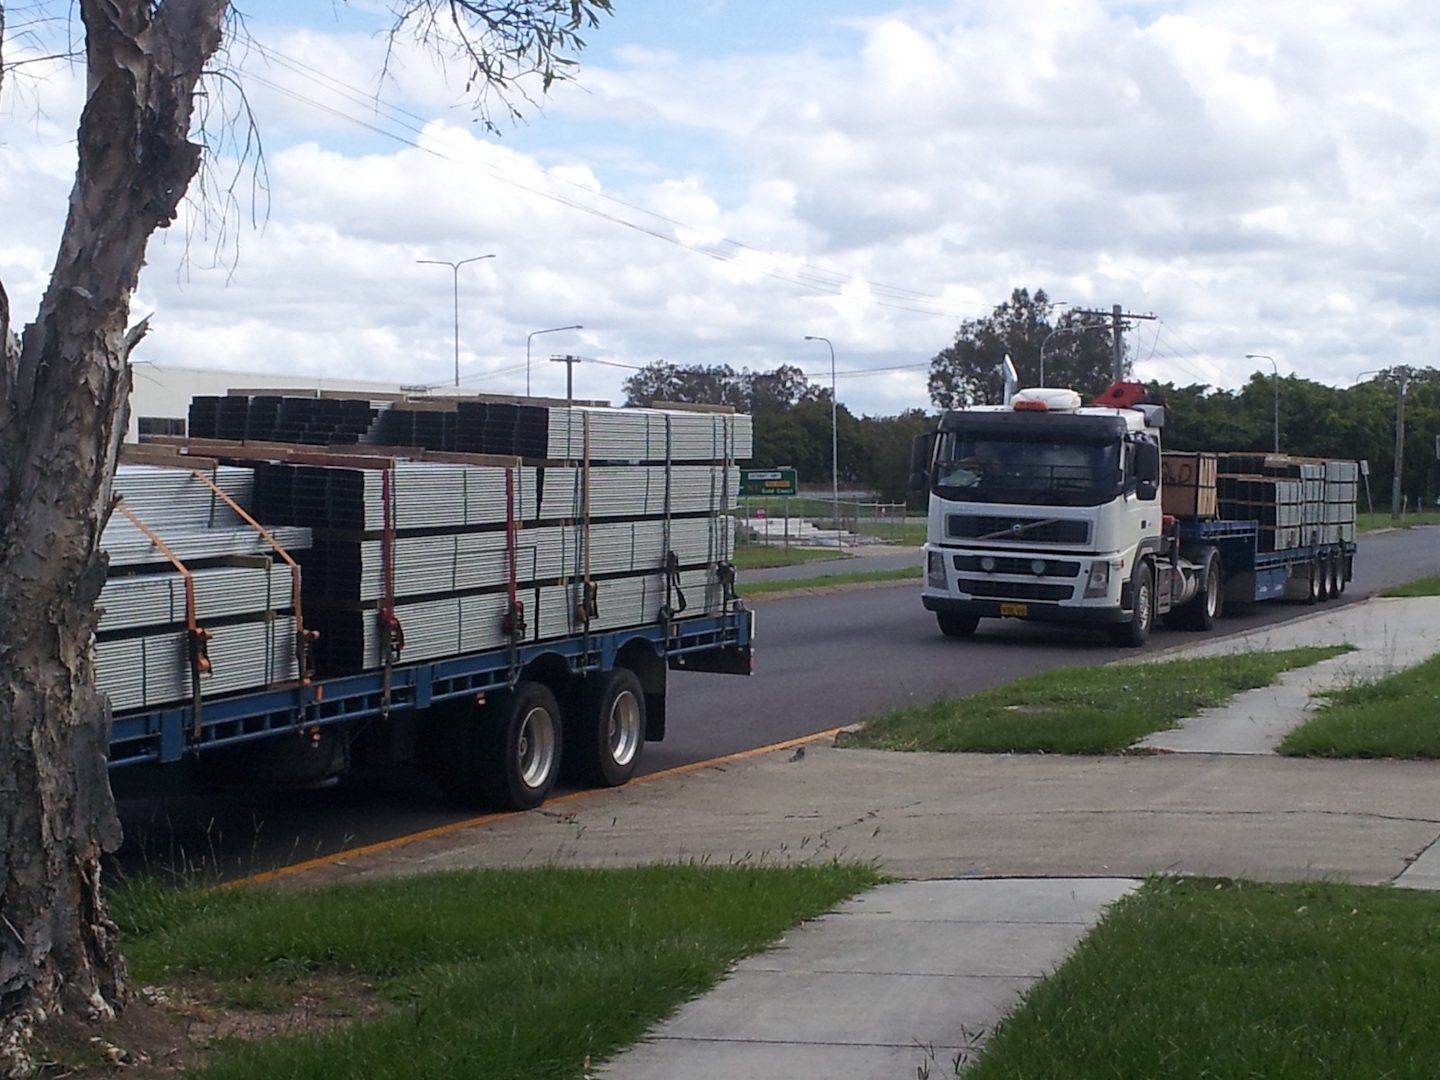 Delivery of the Boxspan mezzanine floor frame arriving for a factory for storage lockers.